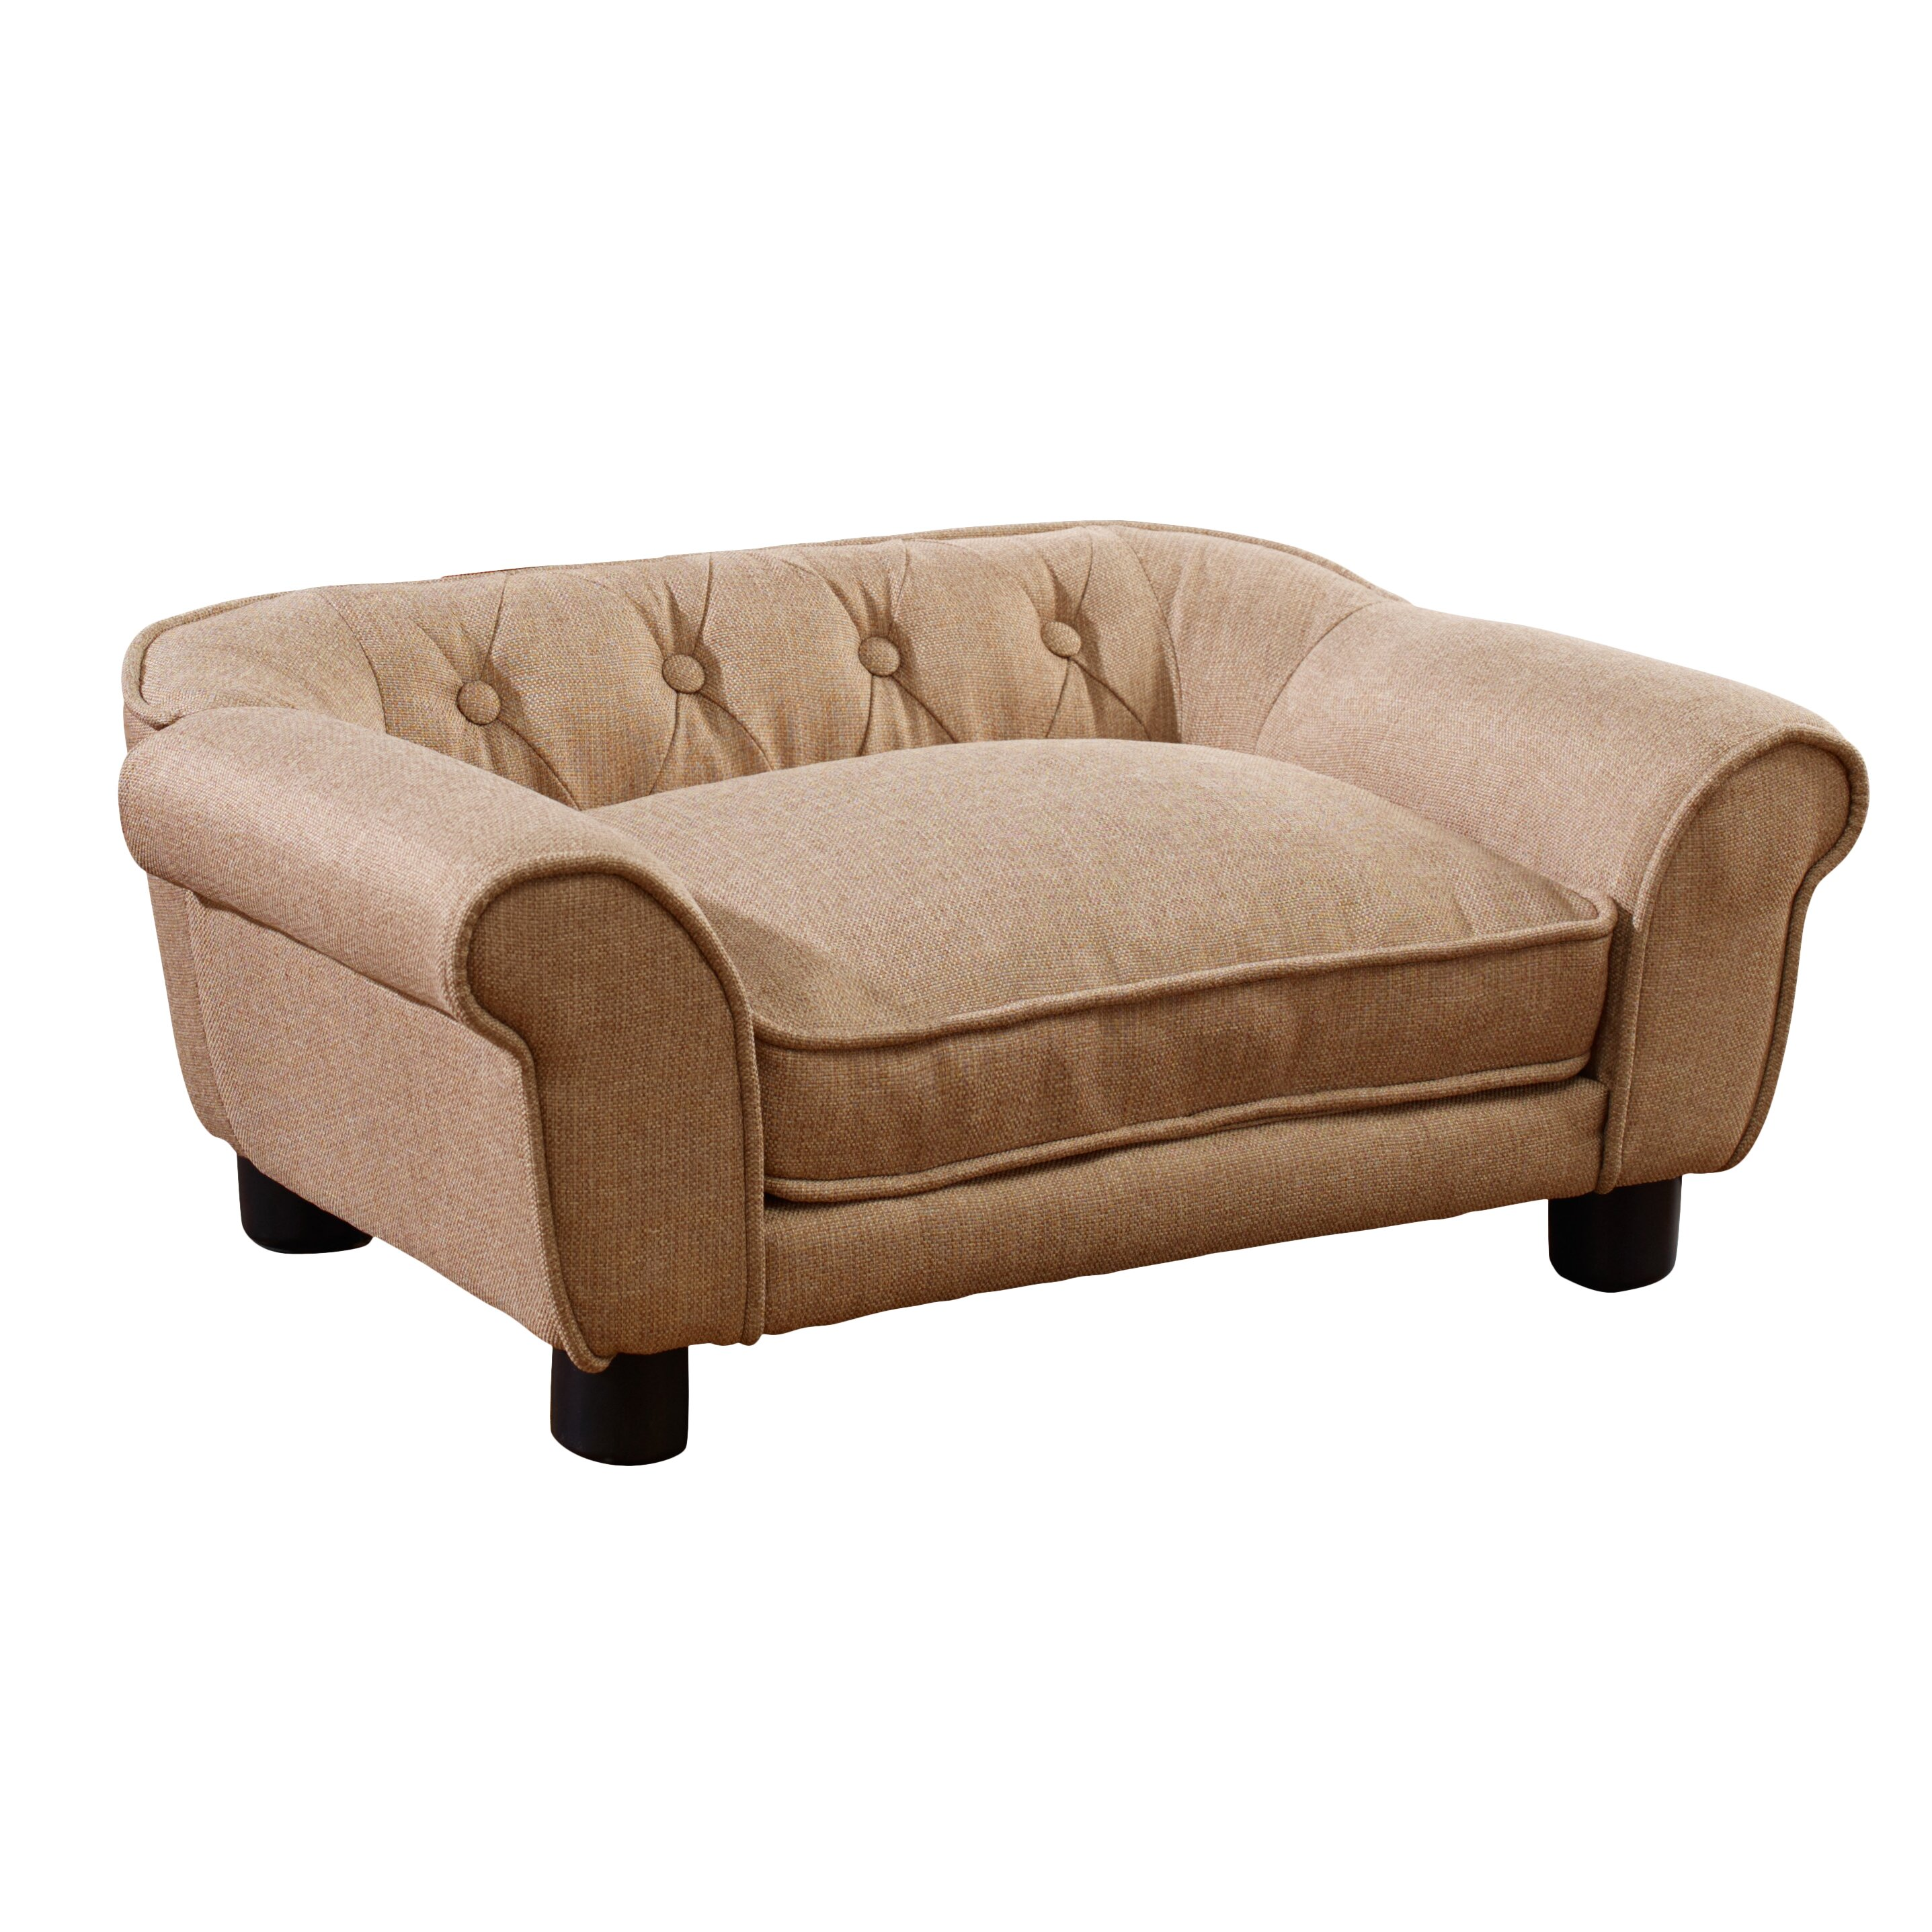 Enchanted home pet sydney sofa dog bed reviews wayfair for Sofa bed sydney